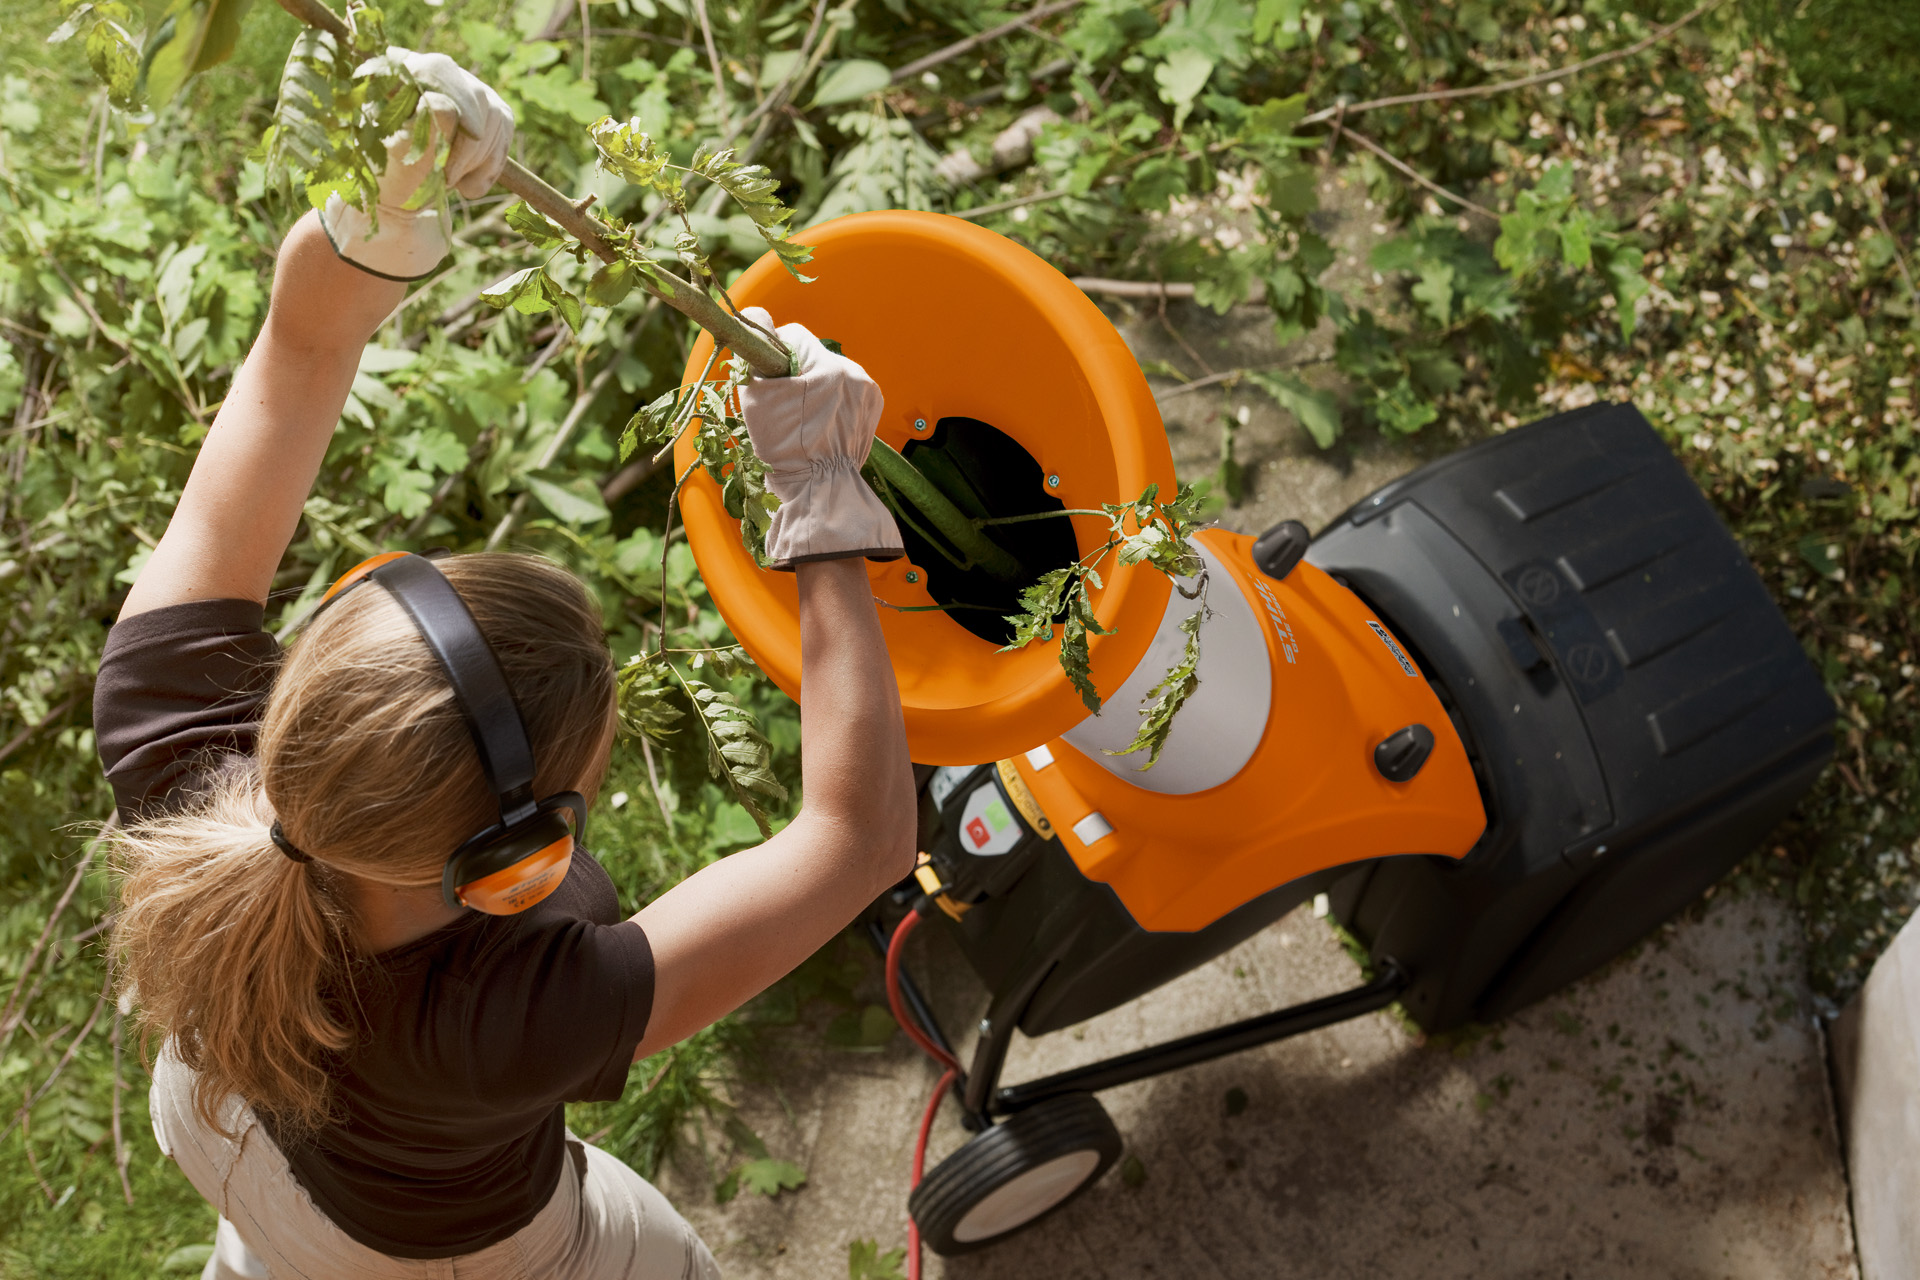 STIHL leaf shredder